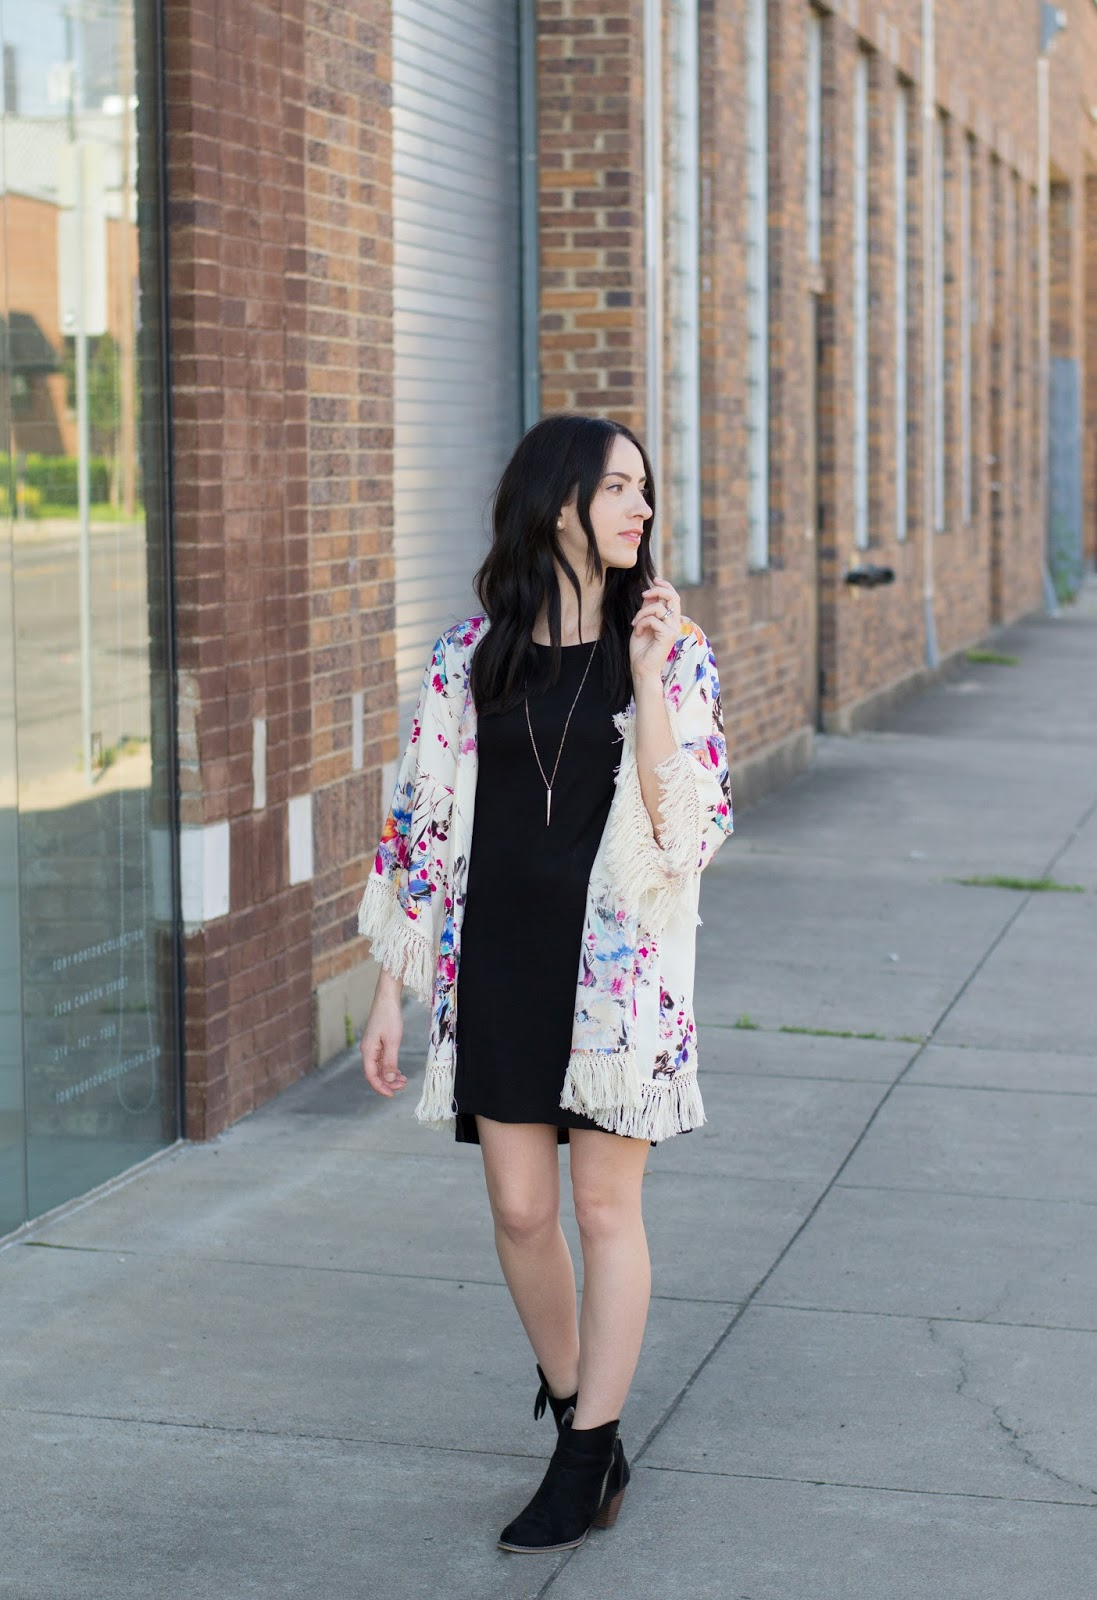 Simple black dress layered with lightweight summer floral kimono